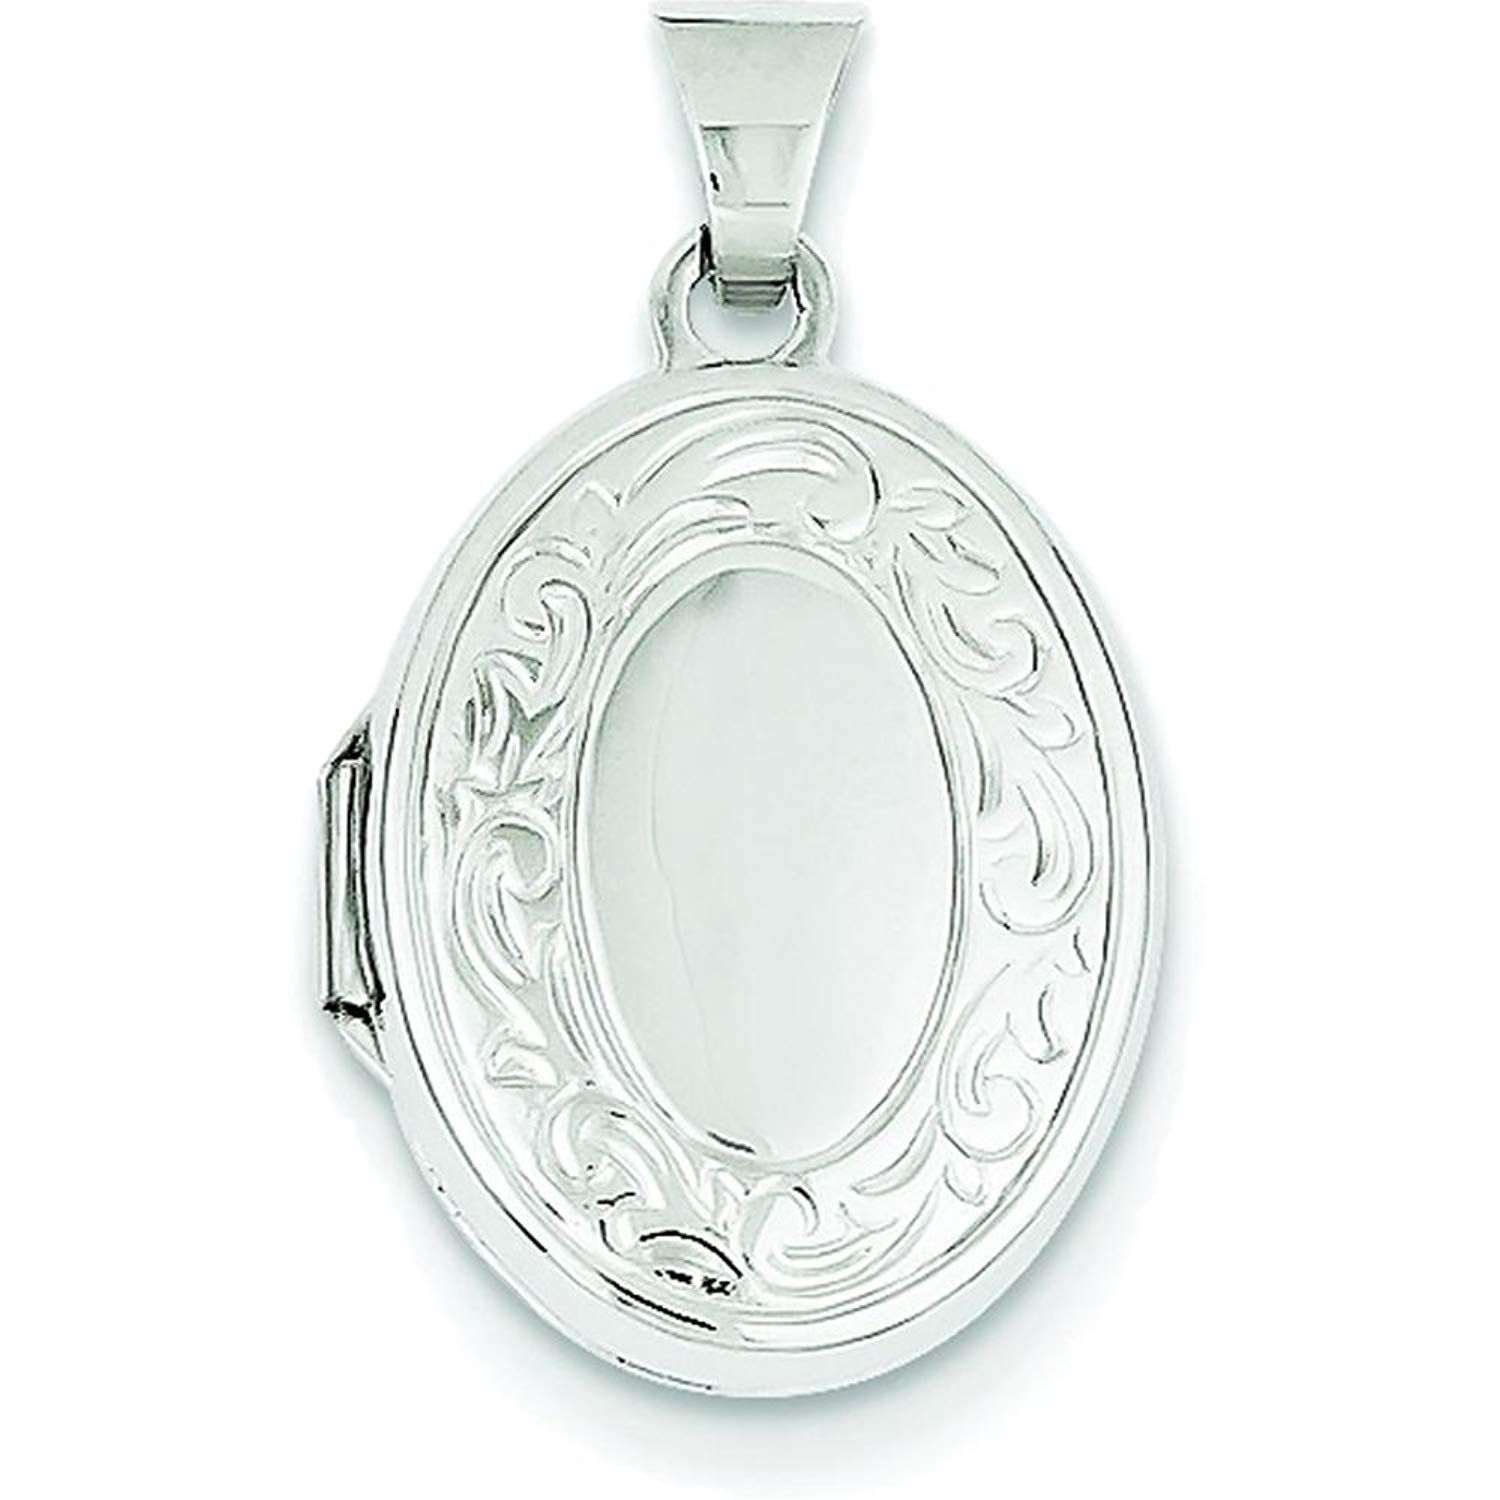 14k White Gold 17mm Oval Embossed Border Photo Pendant Charm Locket Chain Necklace That Holds Pictures Fine Jewelry For Women Gifts For Her